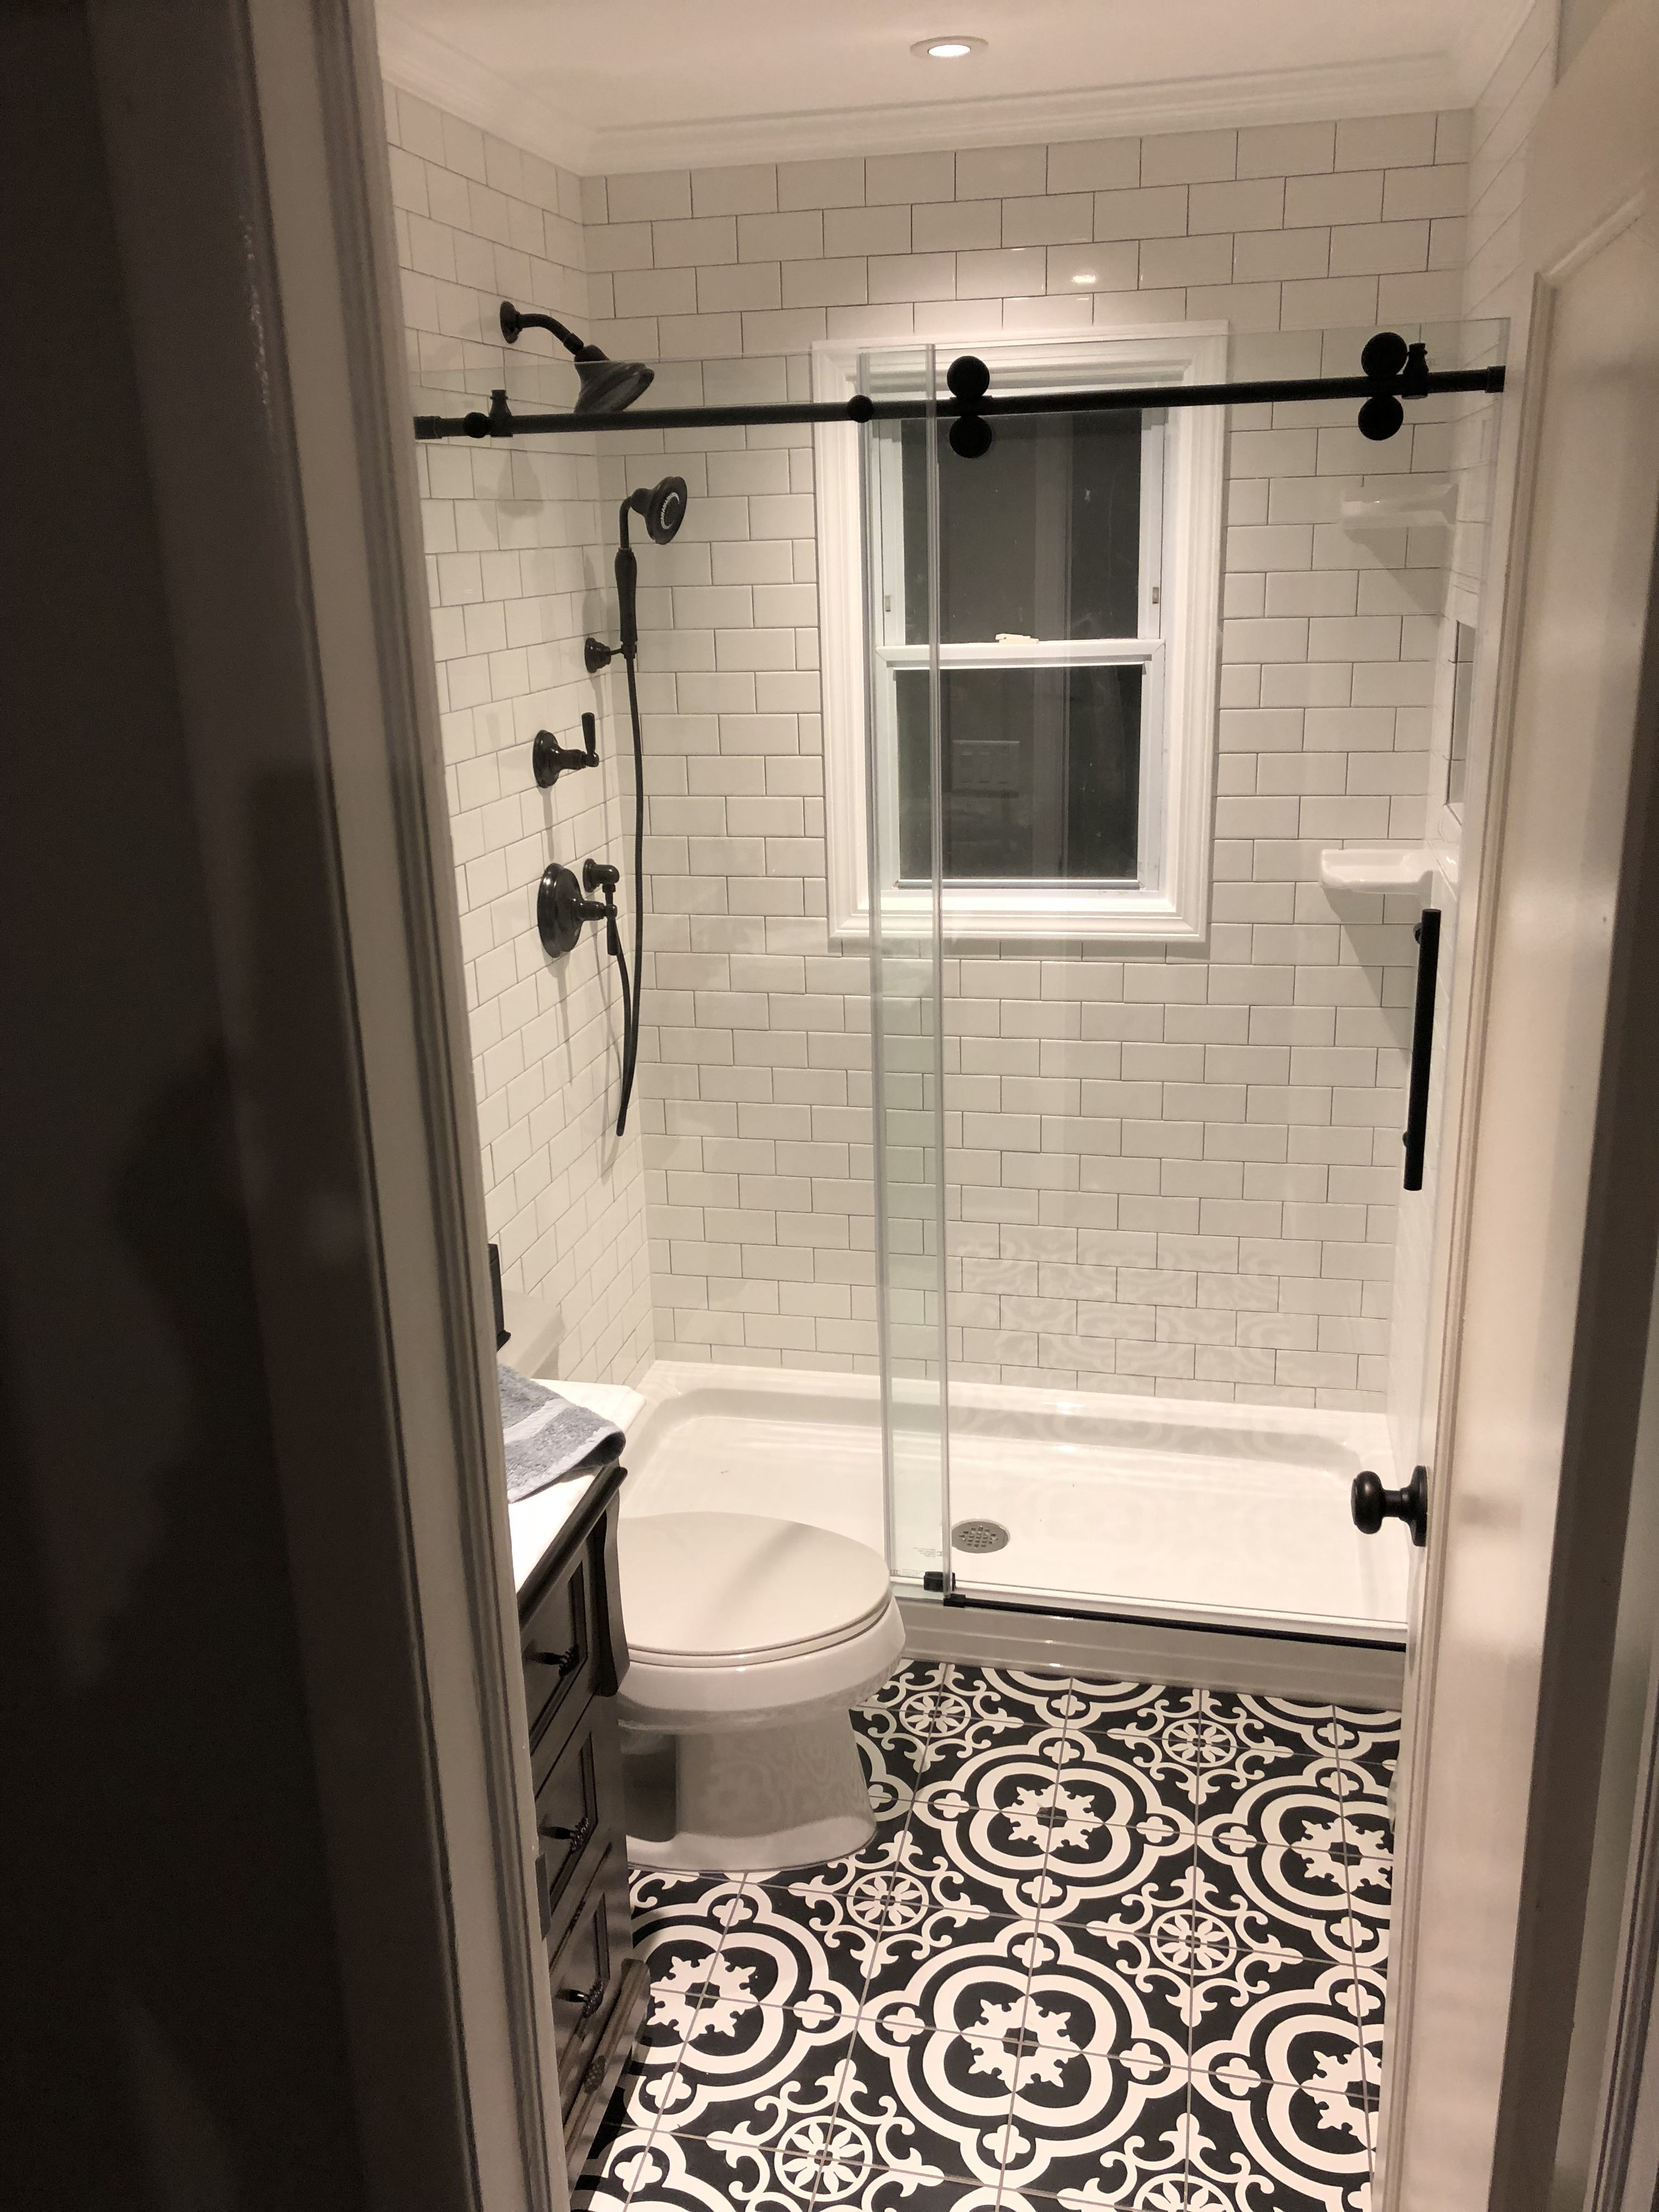 DIY vintage rustic bathroom remodel | Home renovation inspirations ...